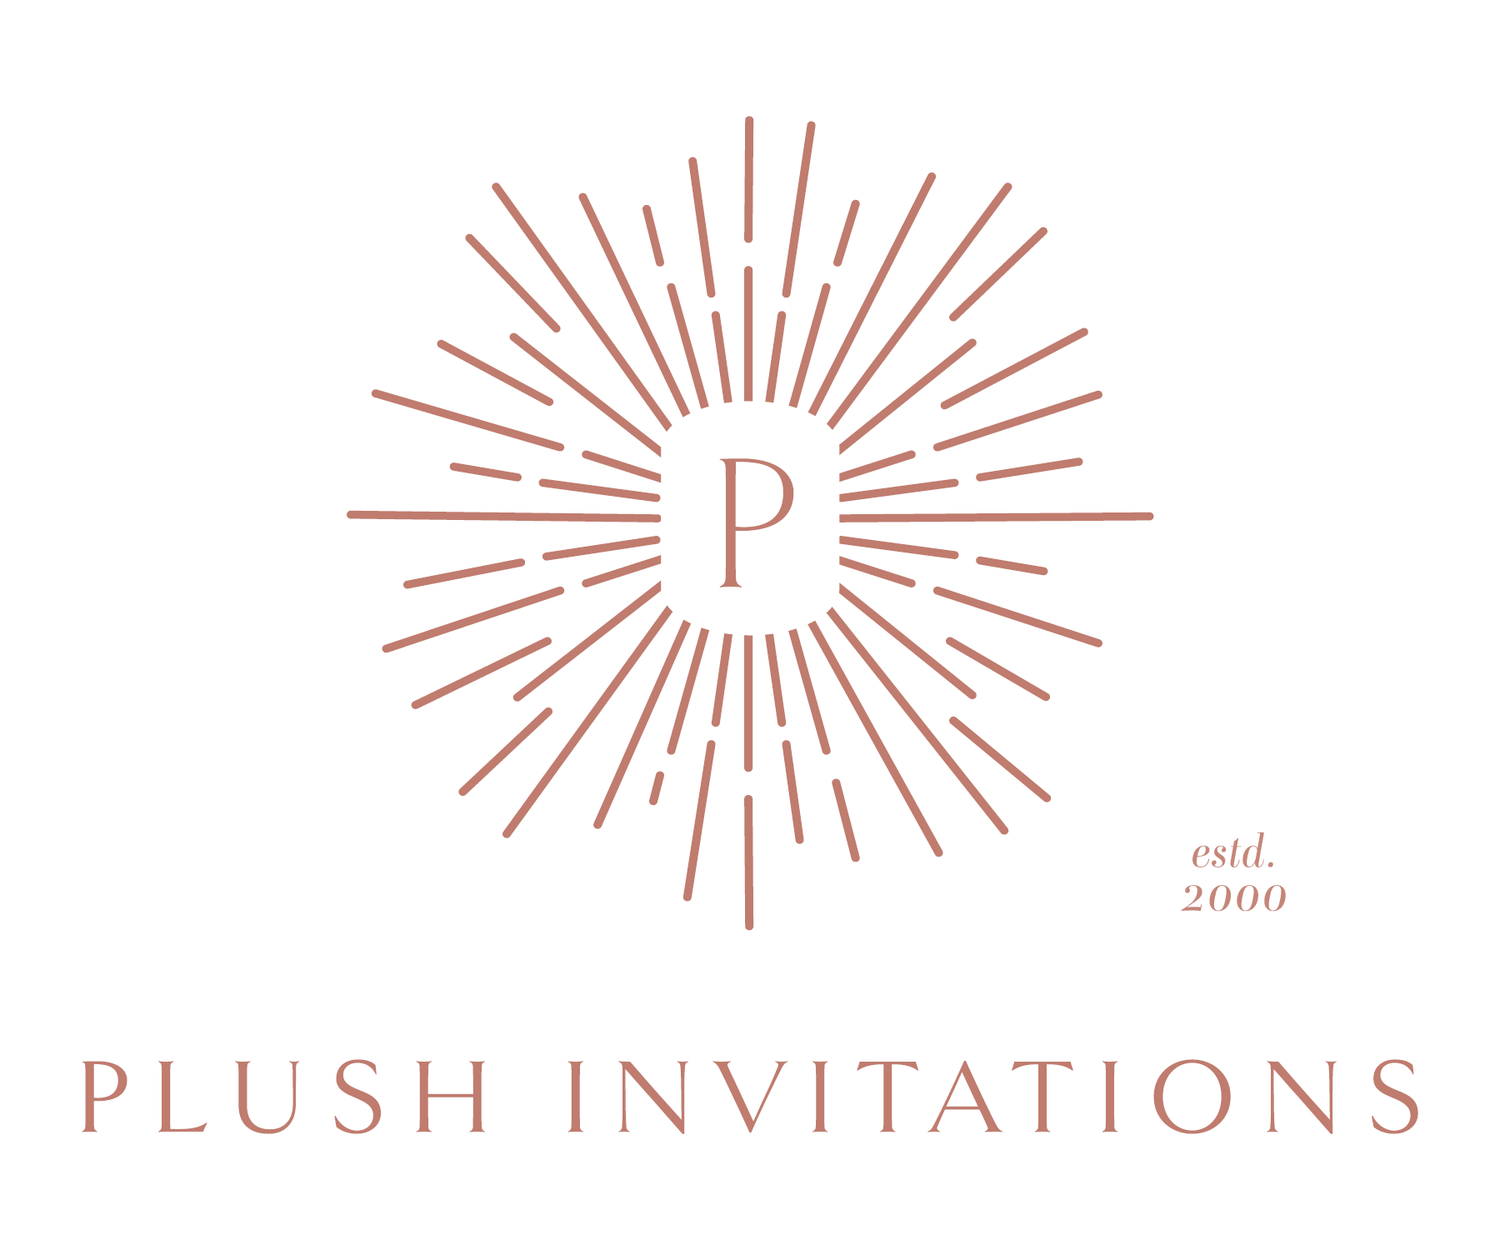 Plush Invitations